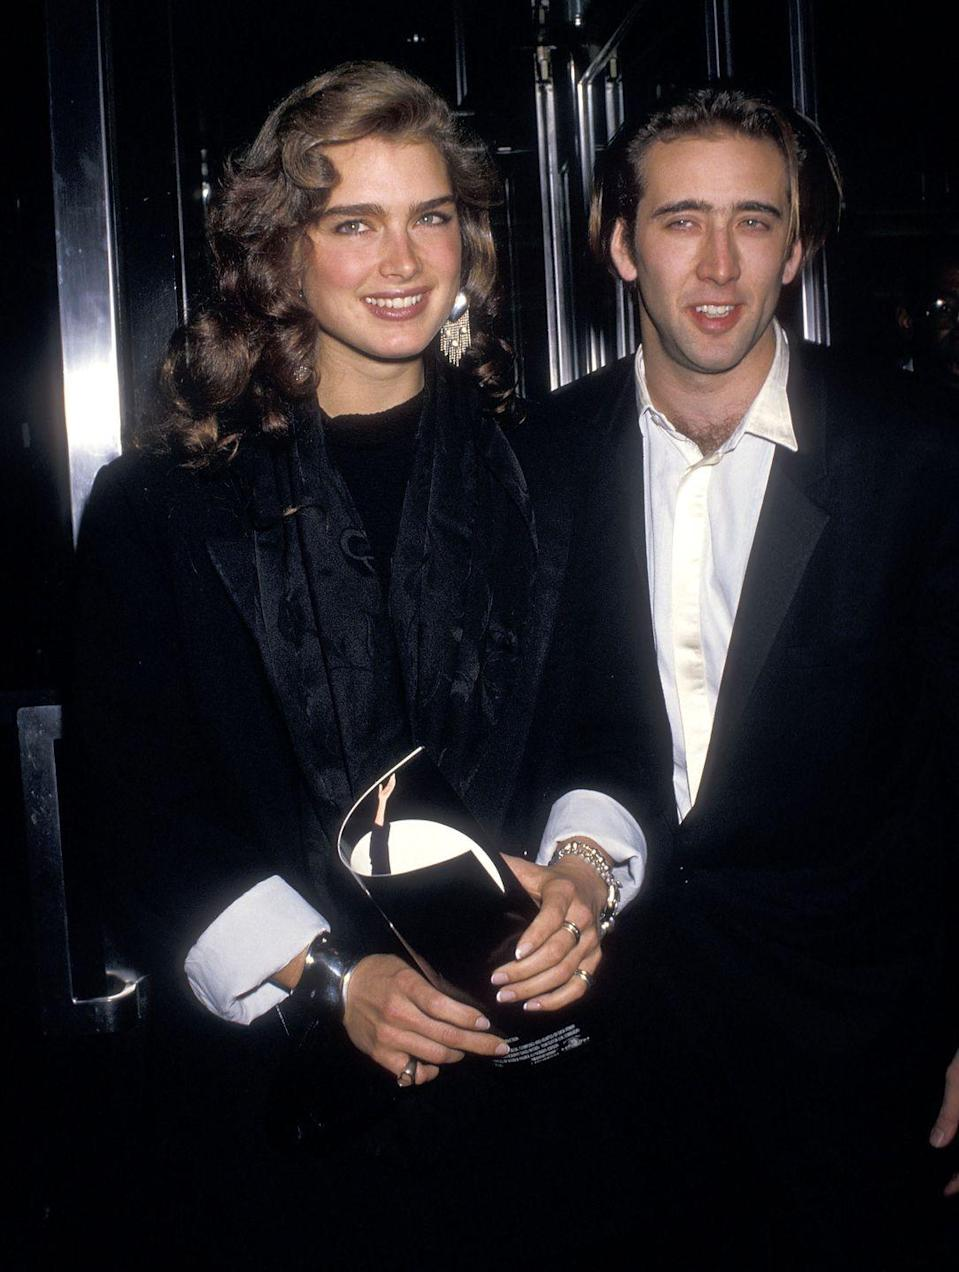 """<p>Here, Brooke is pictured with actor Nicolas Cage at the <em>Moonstruck</em> premiere in New York City. The two briefly <a href=""""https://www.etonline.com/slideshow/gallery/123683_They_Dated_Surprising_Celebrity_Hookups/42900"""" rel=""""nofollow noopener"""" target=""""_blank"""" data-ylk=""""slk:dated"""" class=""""link rapid-noclick-resp"""">dated</a> in the '80s. Brooke has also been <a href=""""https://people.com/celebrity/brooke-shields-husbands-boyfriends-john-travolta-liam-neeson-andre-agassi/"""" rel=""""nofollow noopener"""" target=""""_blank"""" data-ylk=""""slk:linked"""" class=""""link rapid-noclick-resp"""">linked</a> to Scott Baio, John Travolta, Dean Cain, and Liam Neeson. <br></p>"""